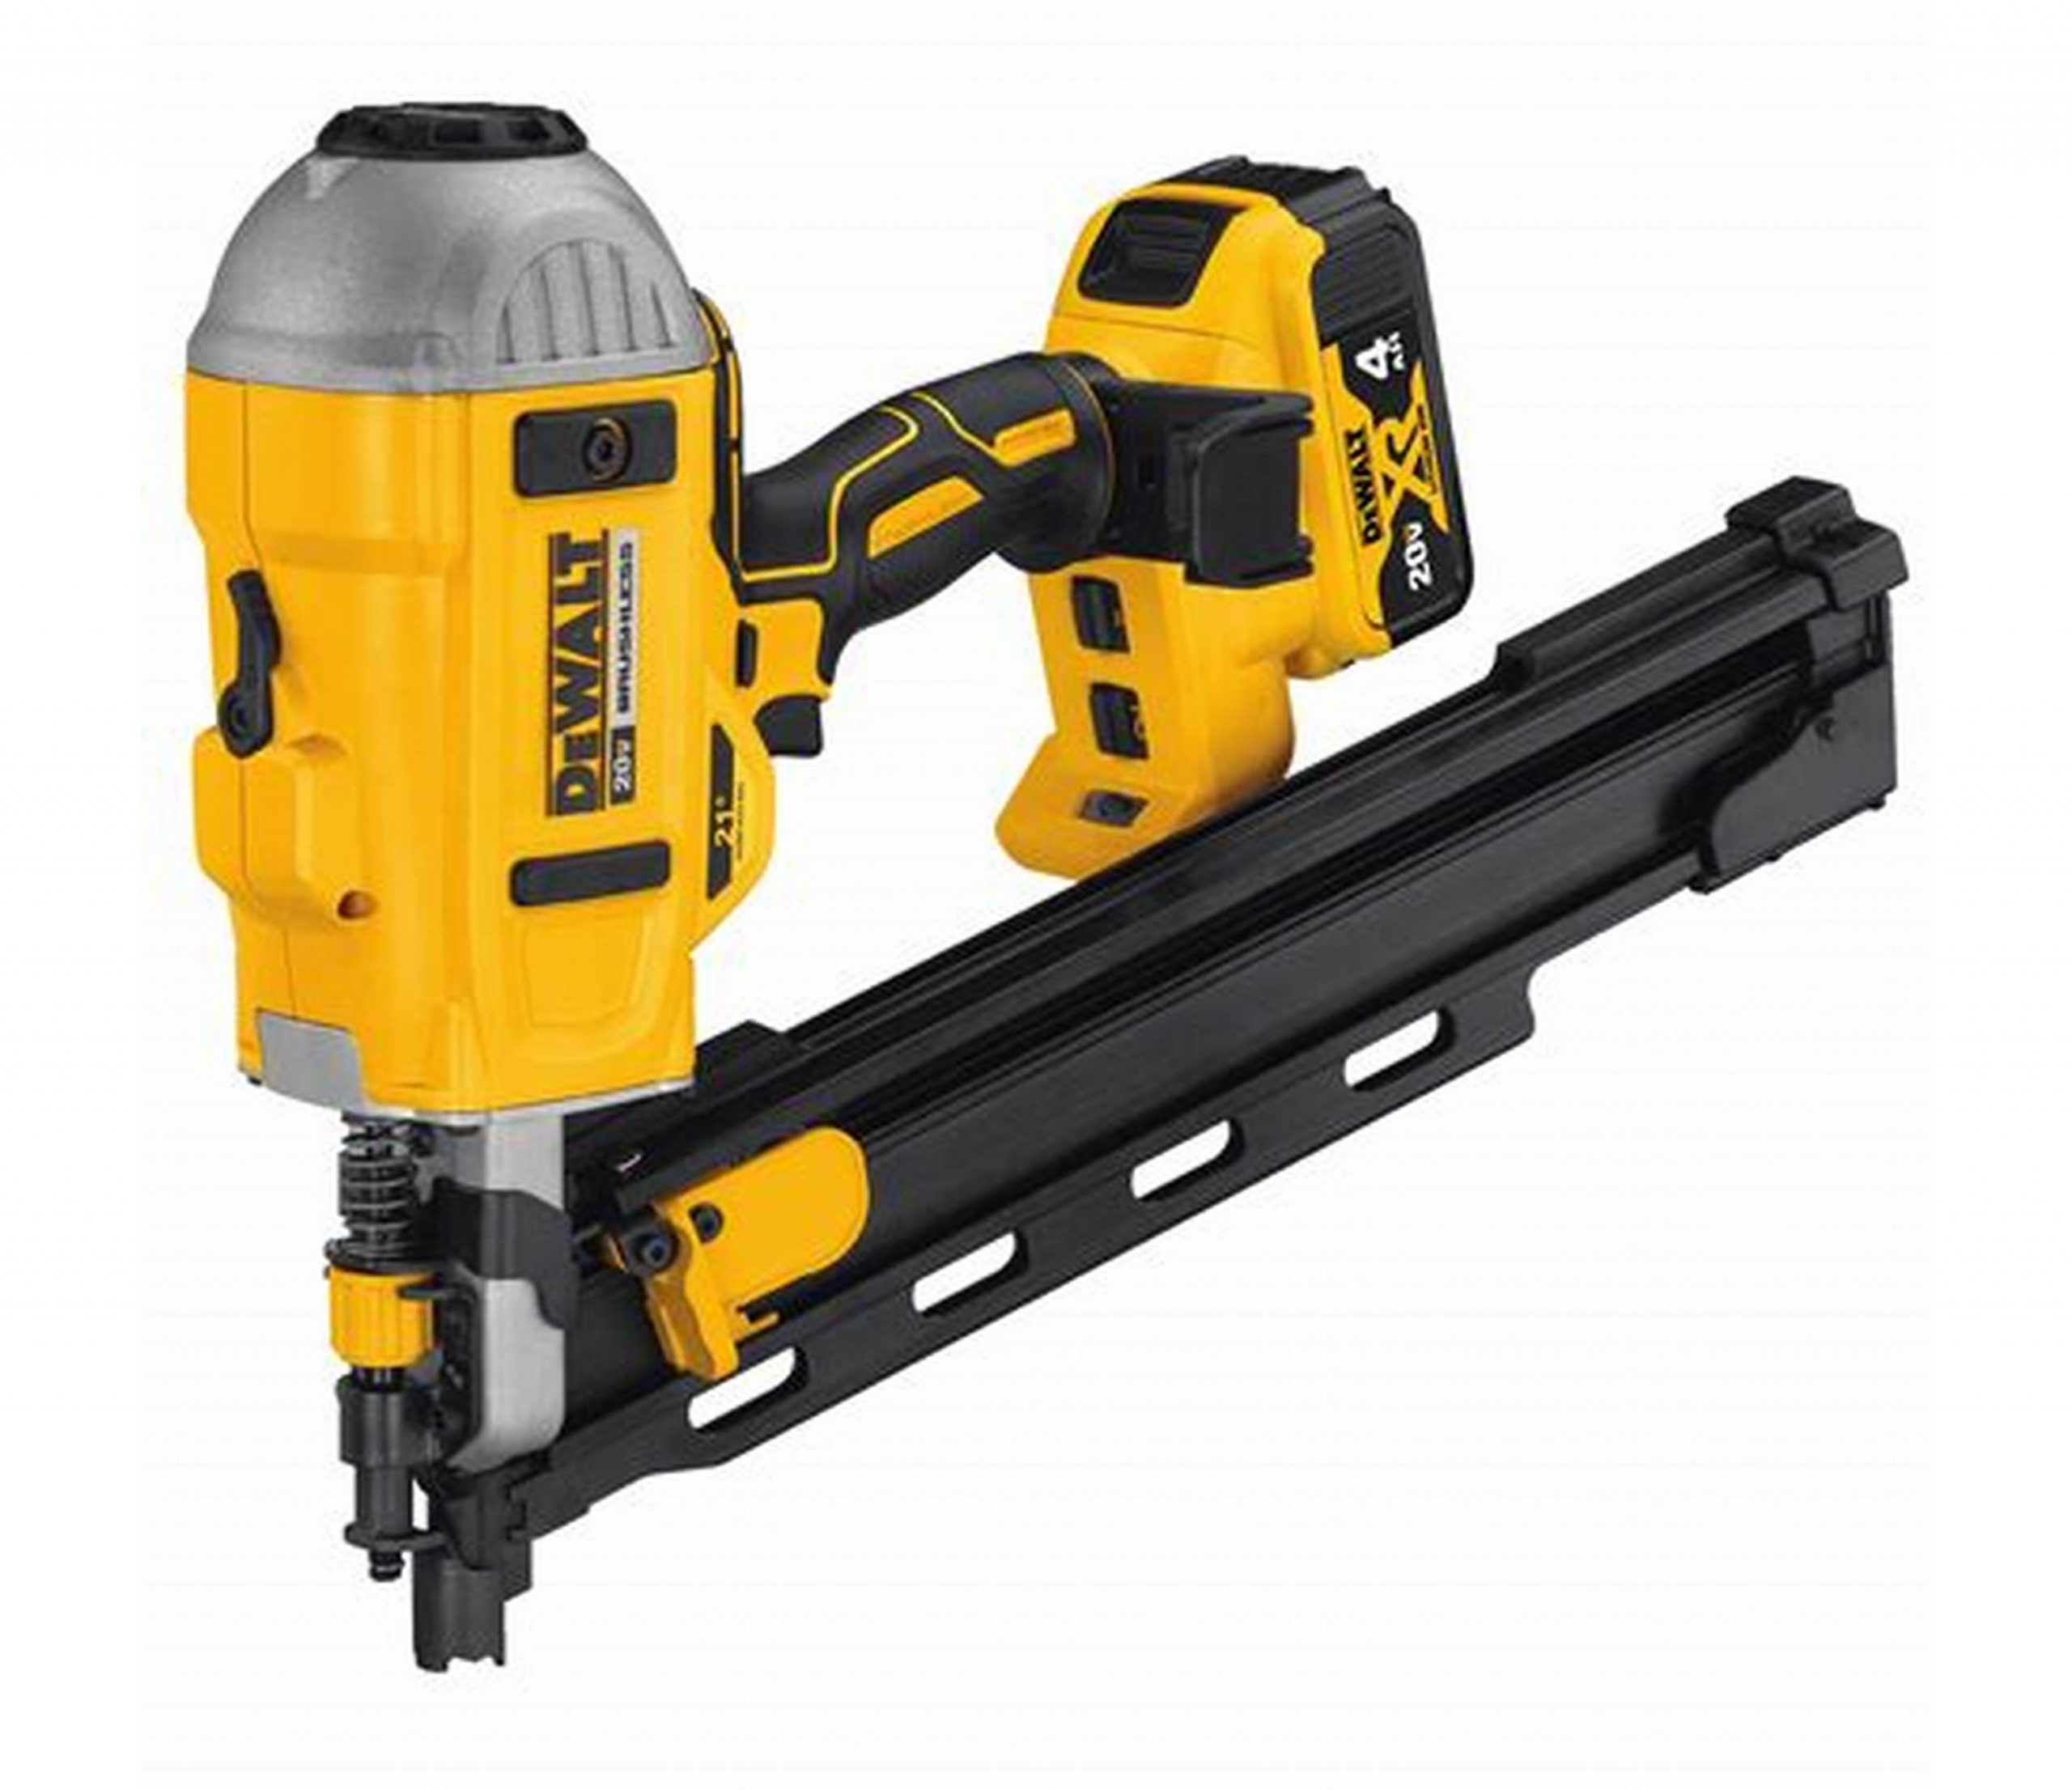 How to Use a Framing Nailer? – Step-By-Step Guide